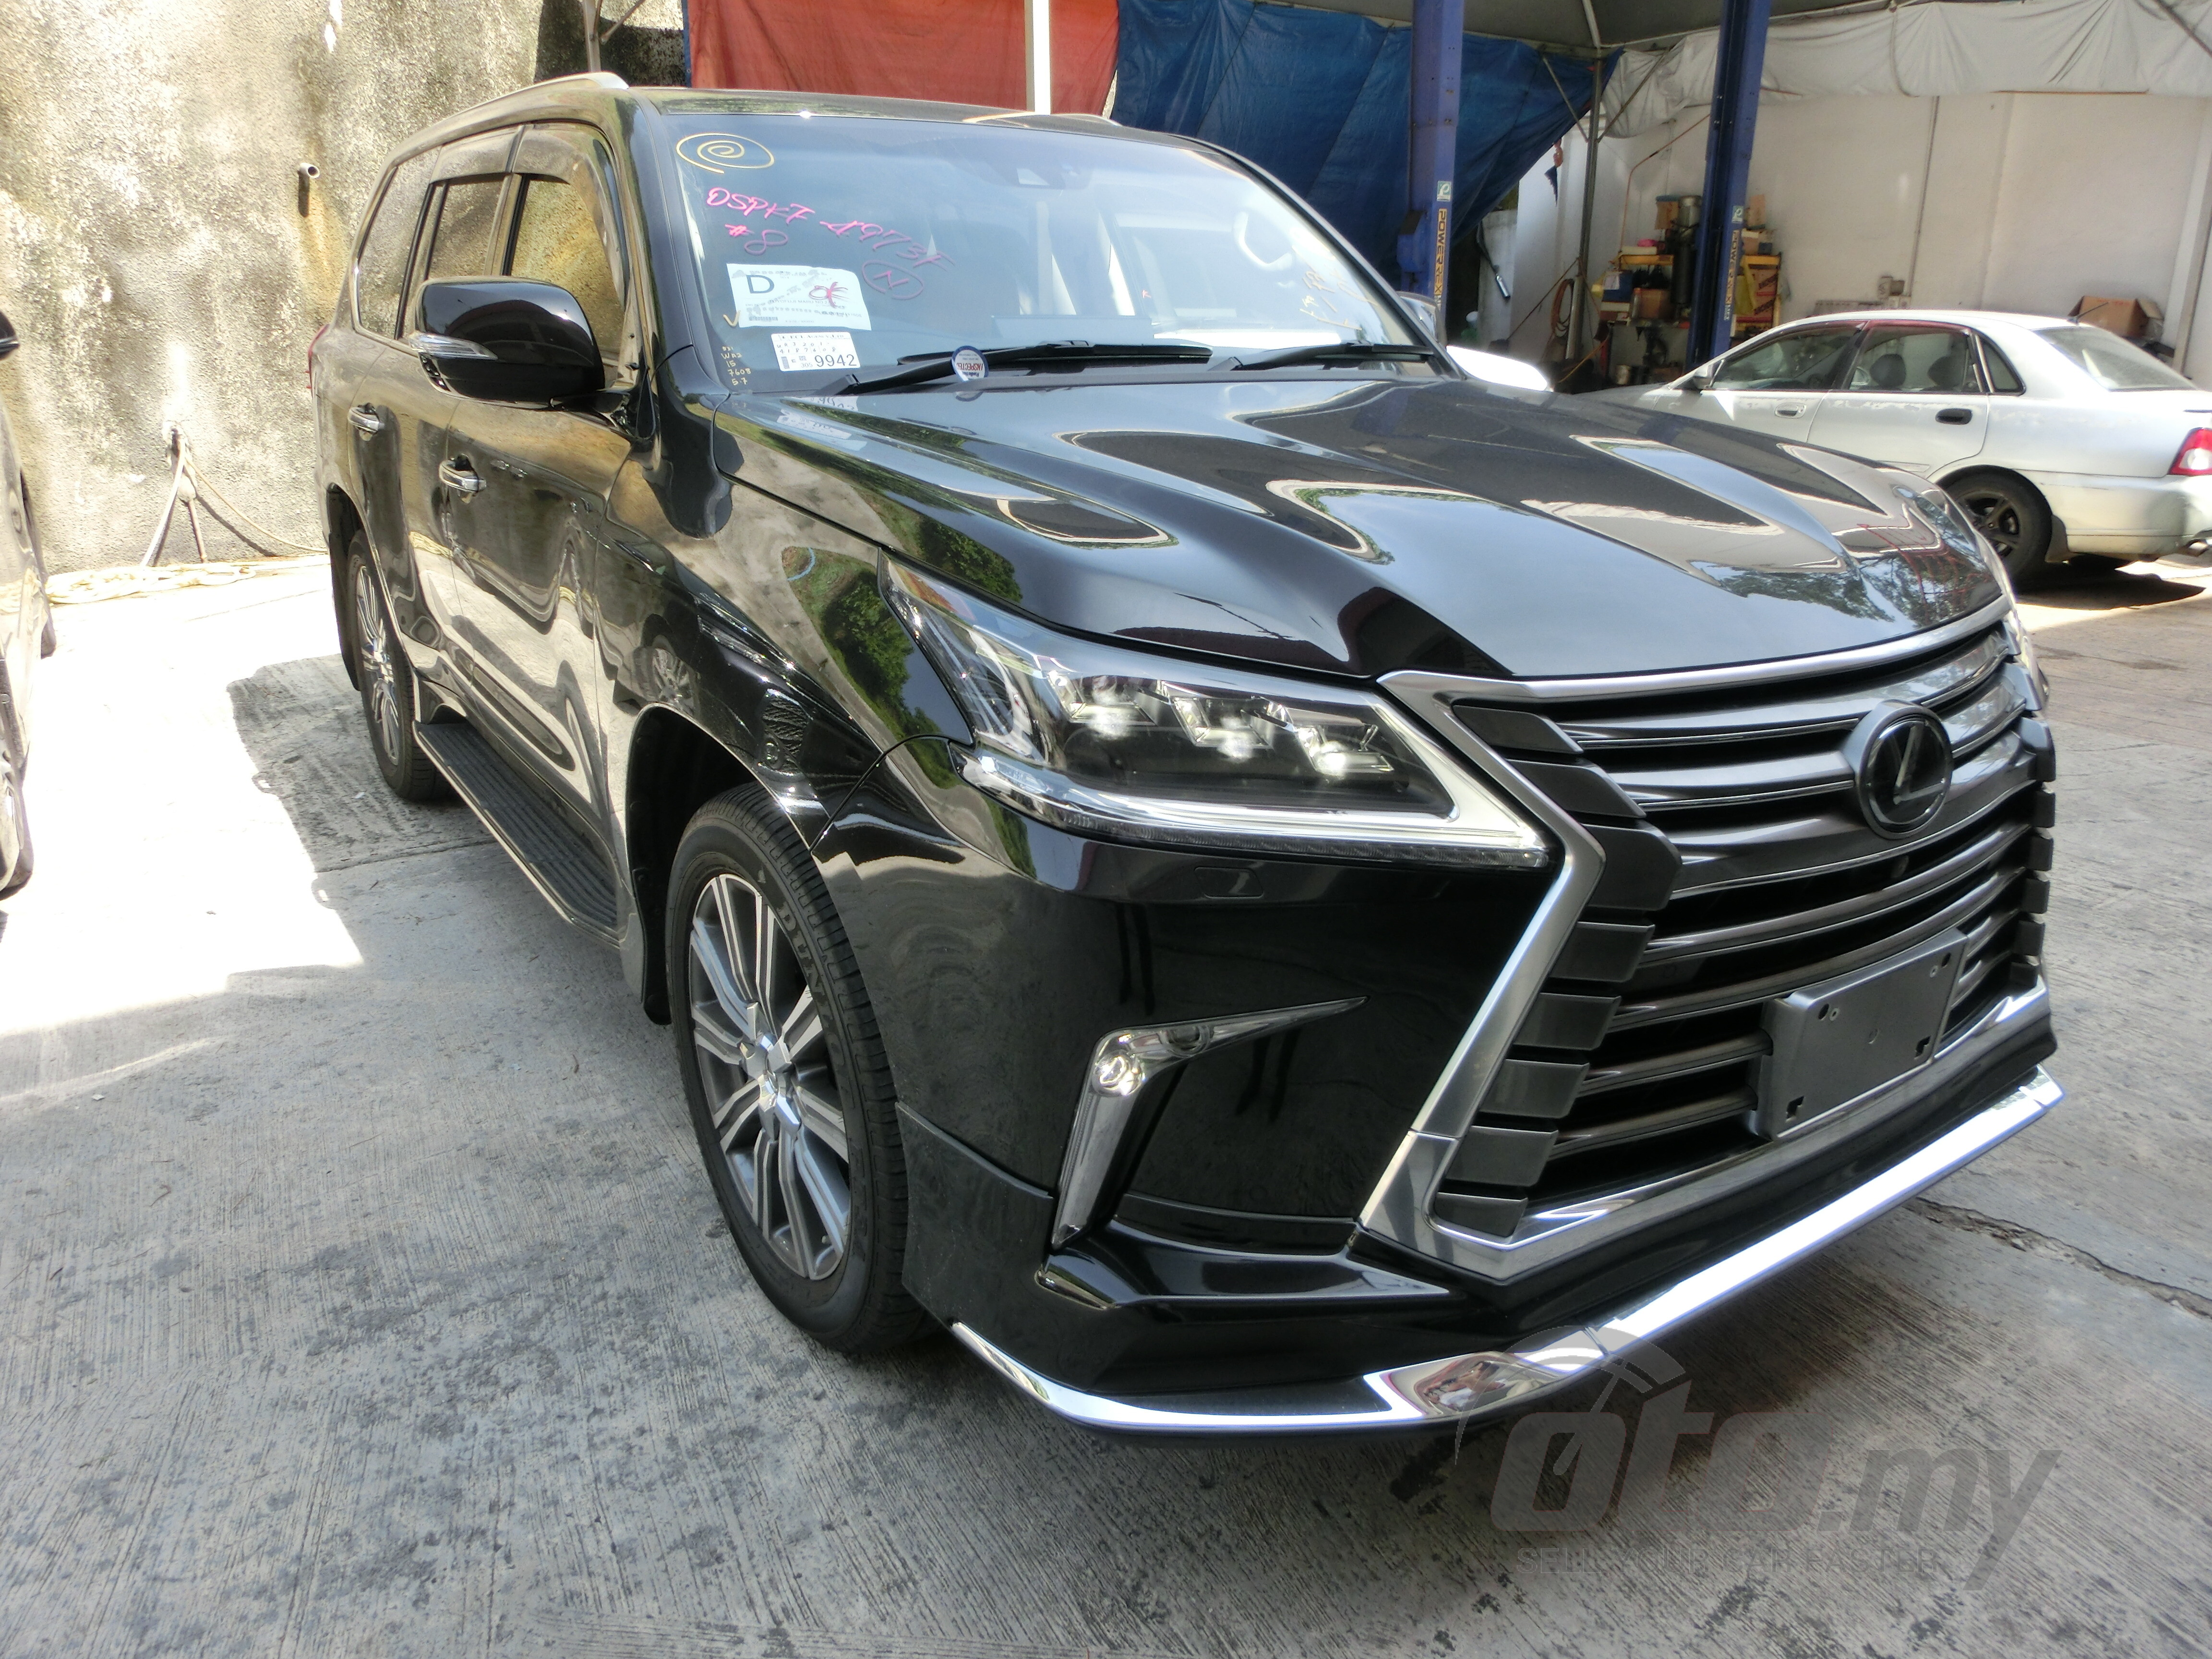 sale spark seater first copy sales image for expected to quarters l silk industry news seven nz metallic lexus rear automotive suv rx three